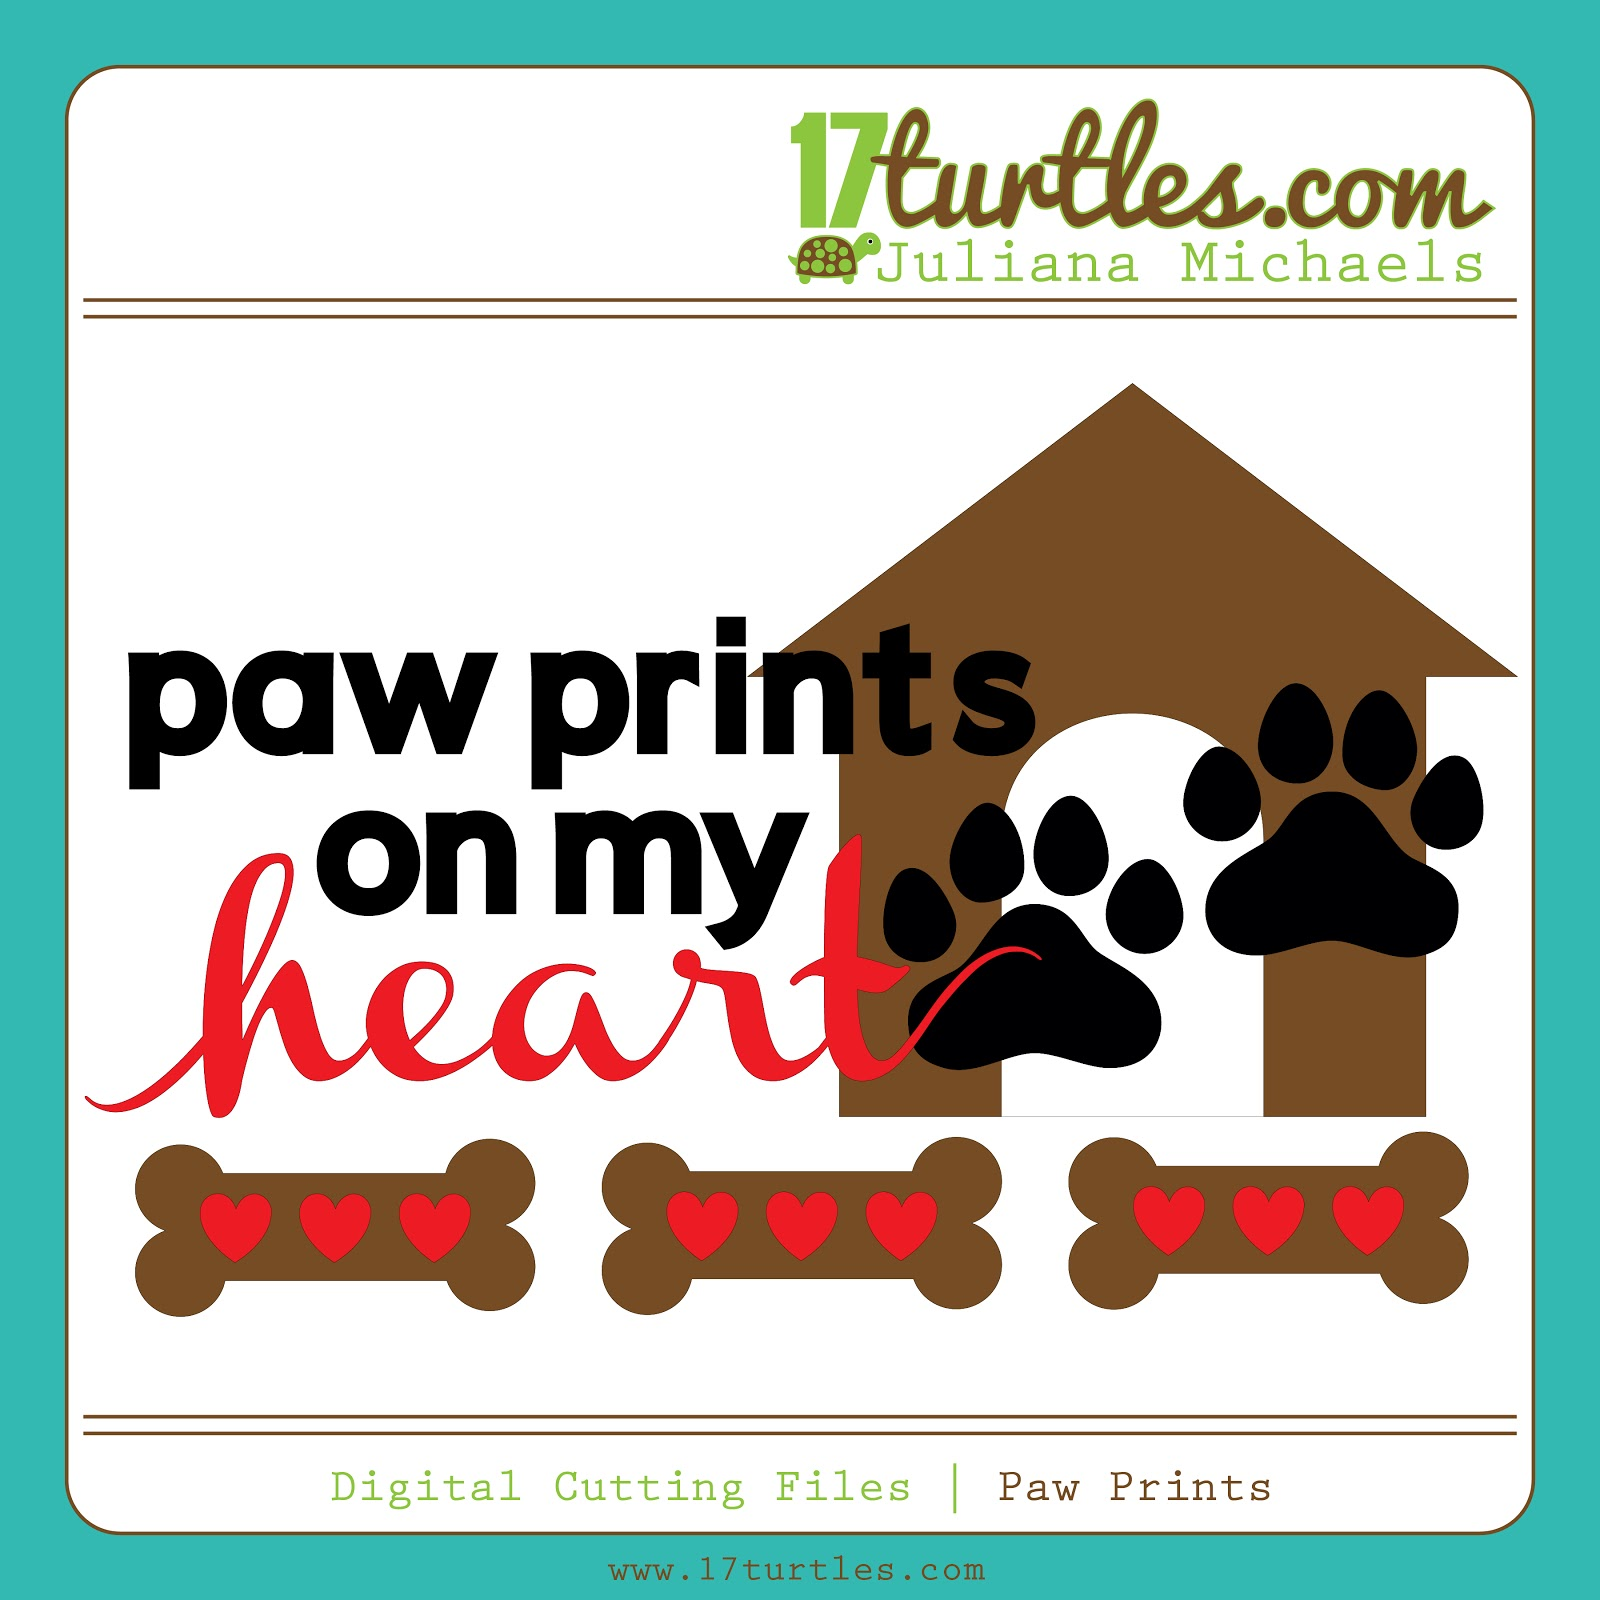 17turtles Digital Cut Files Paw Prints